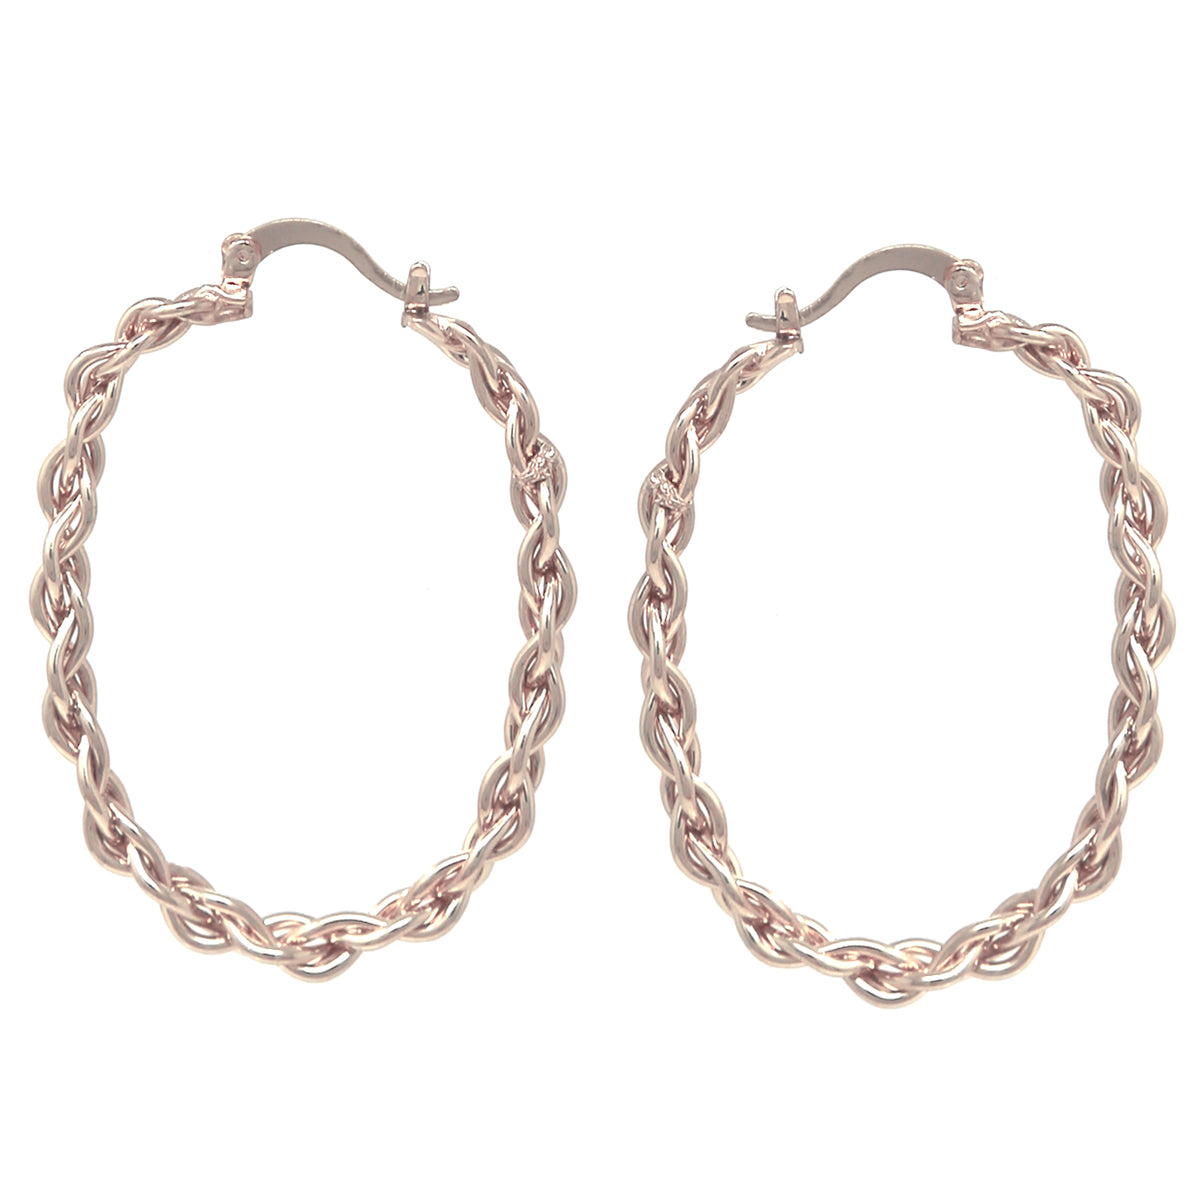 Hypo Allergenic Linked Chain Oval Hoop Earrings (Large)